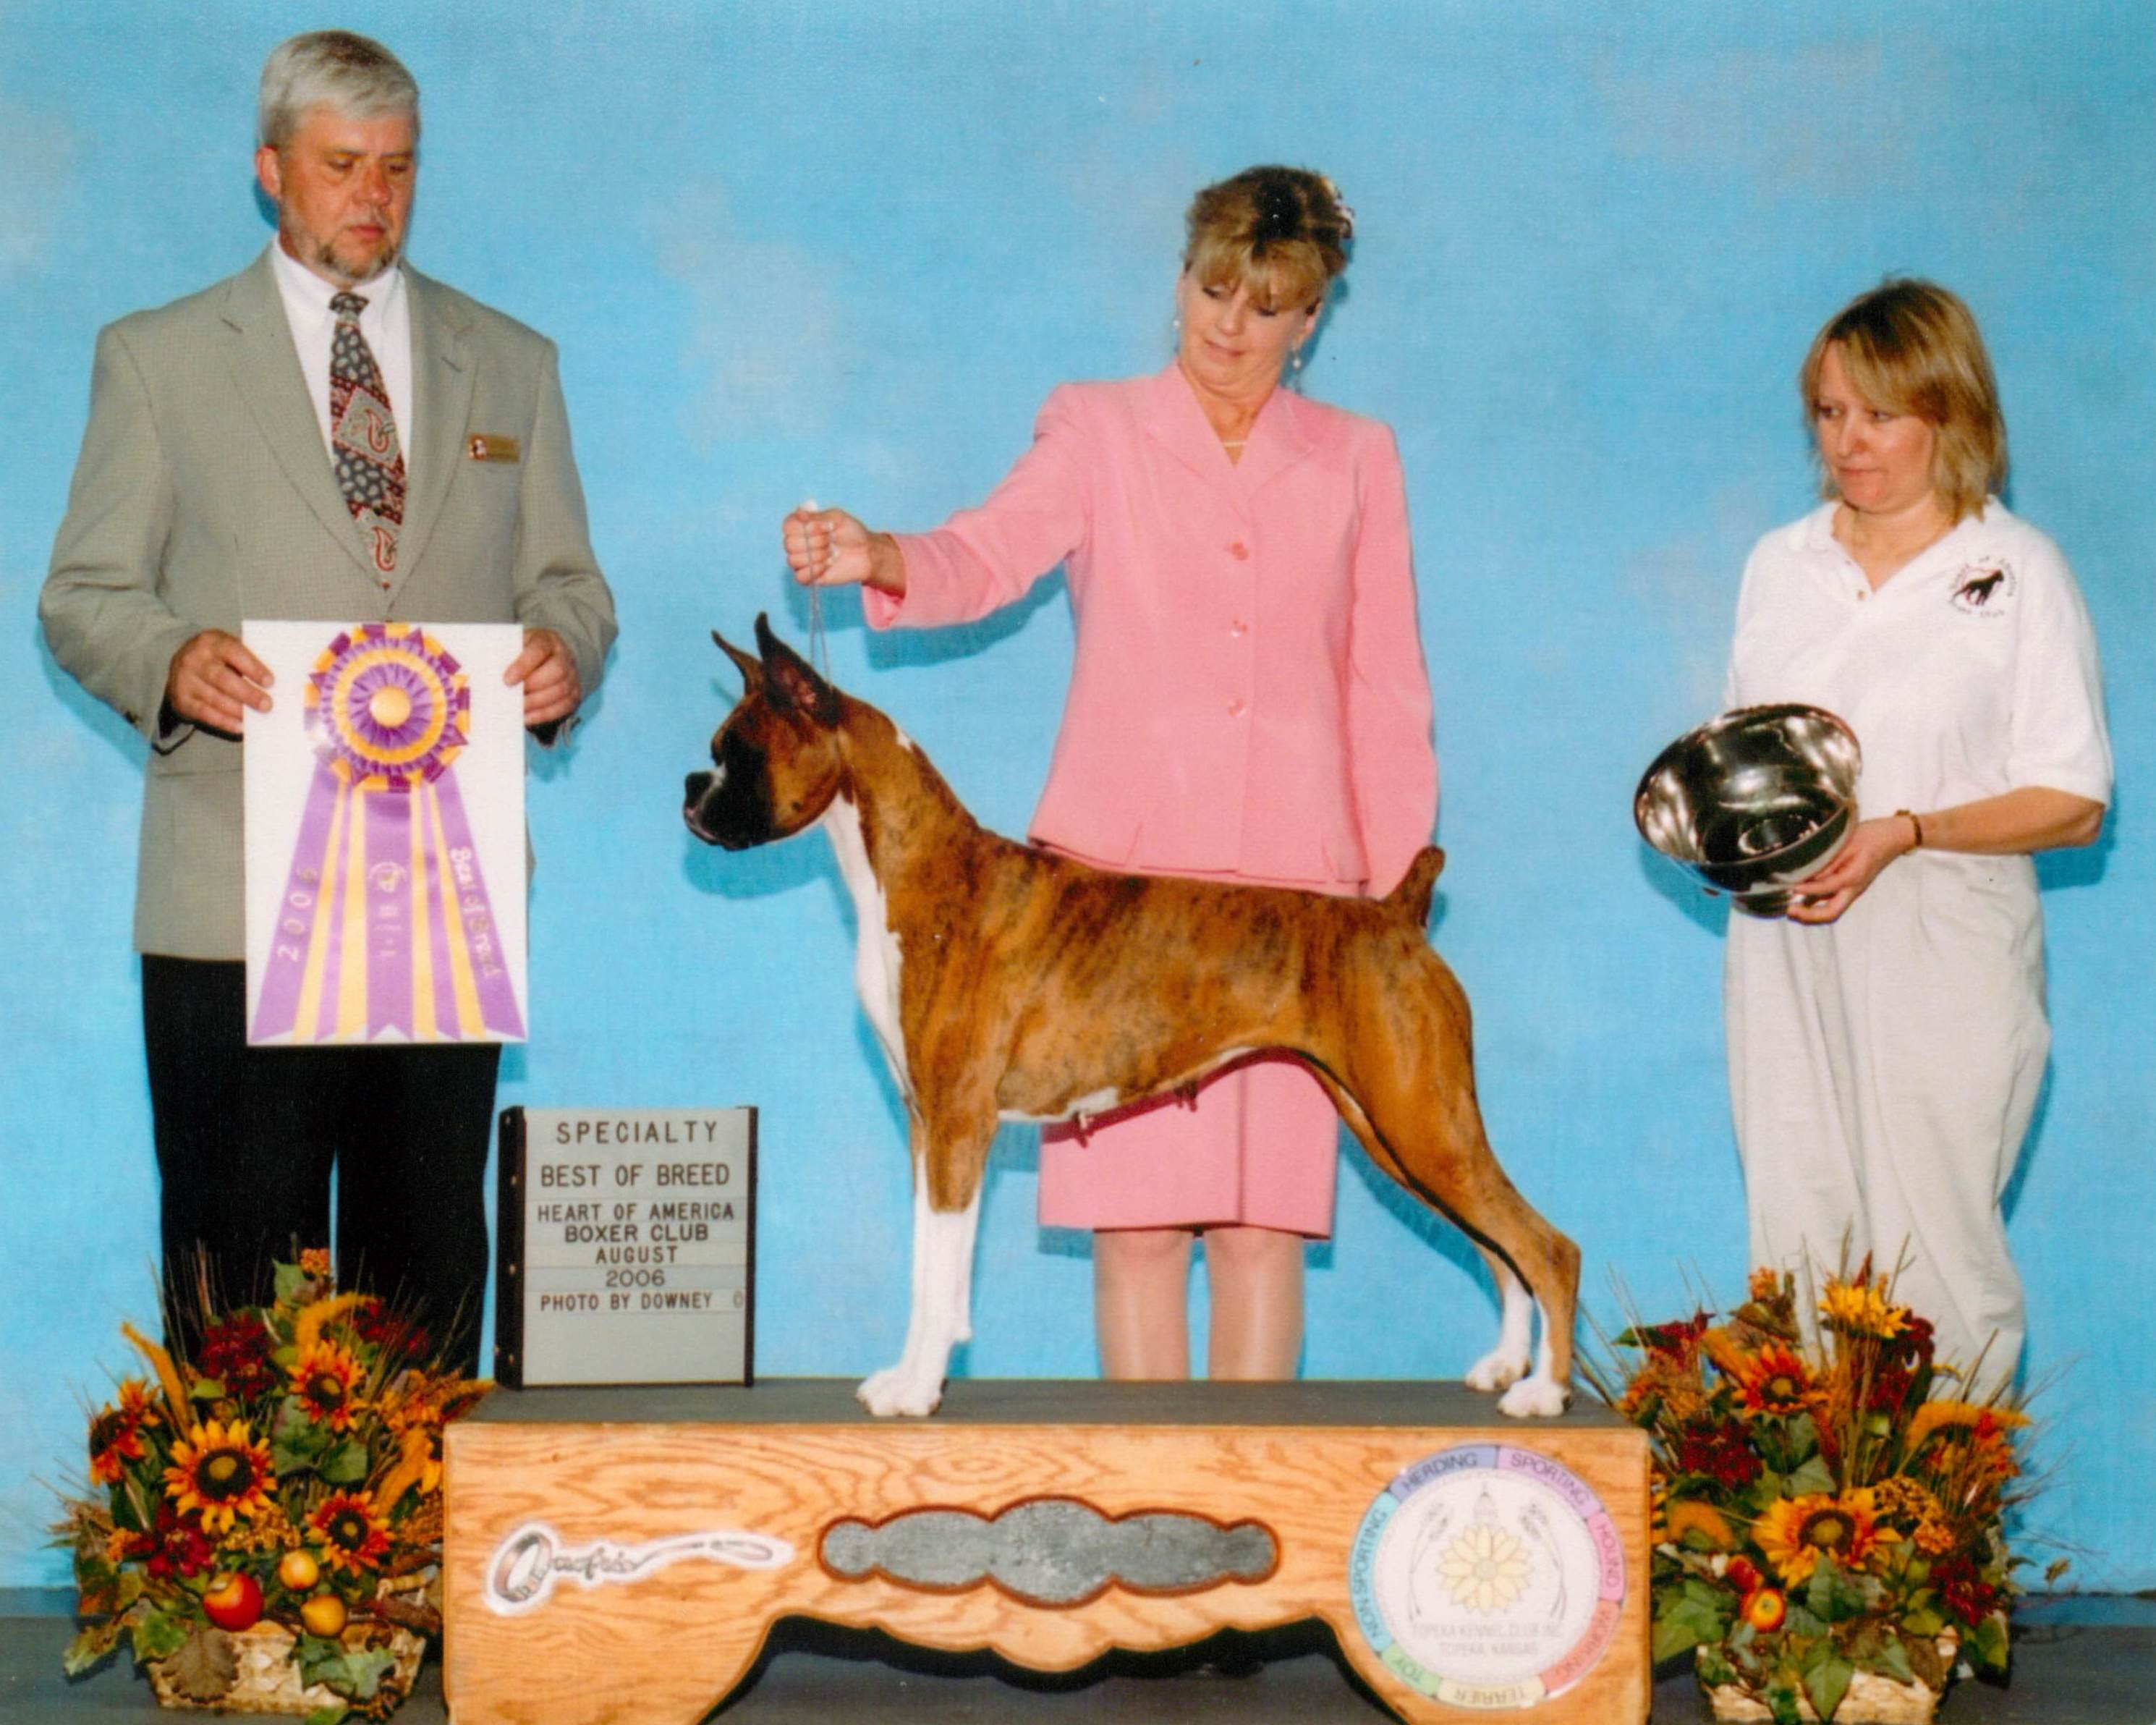 Best of Breed @ 2006 Specialty Show #1